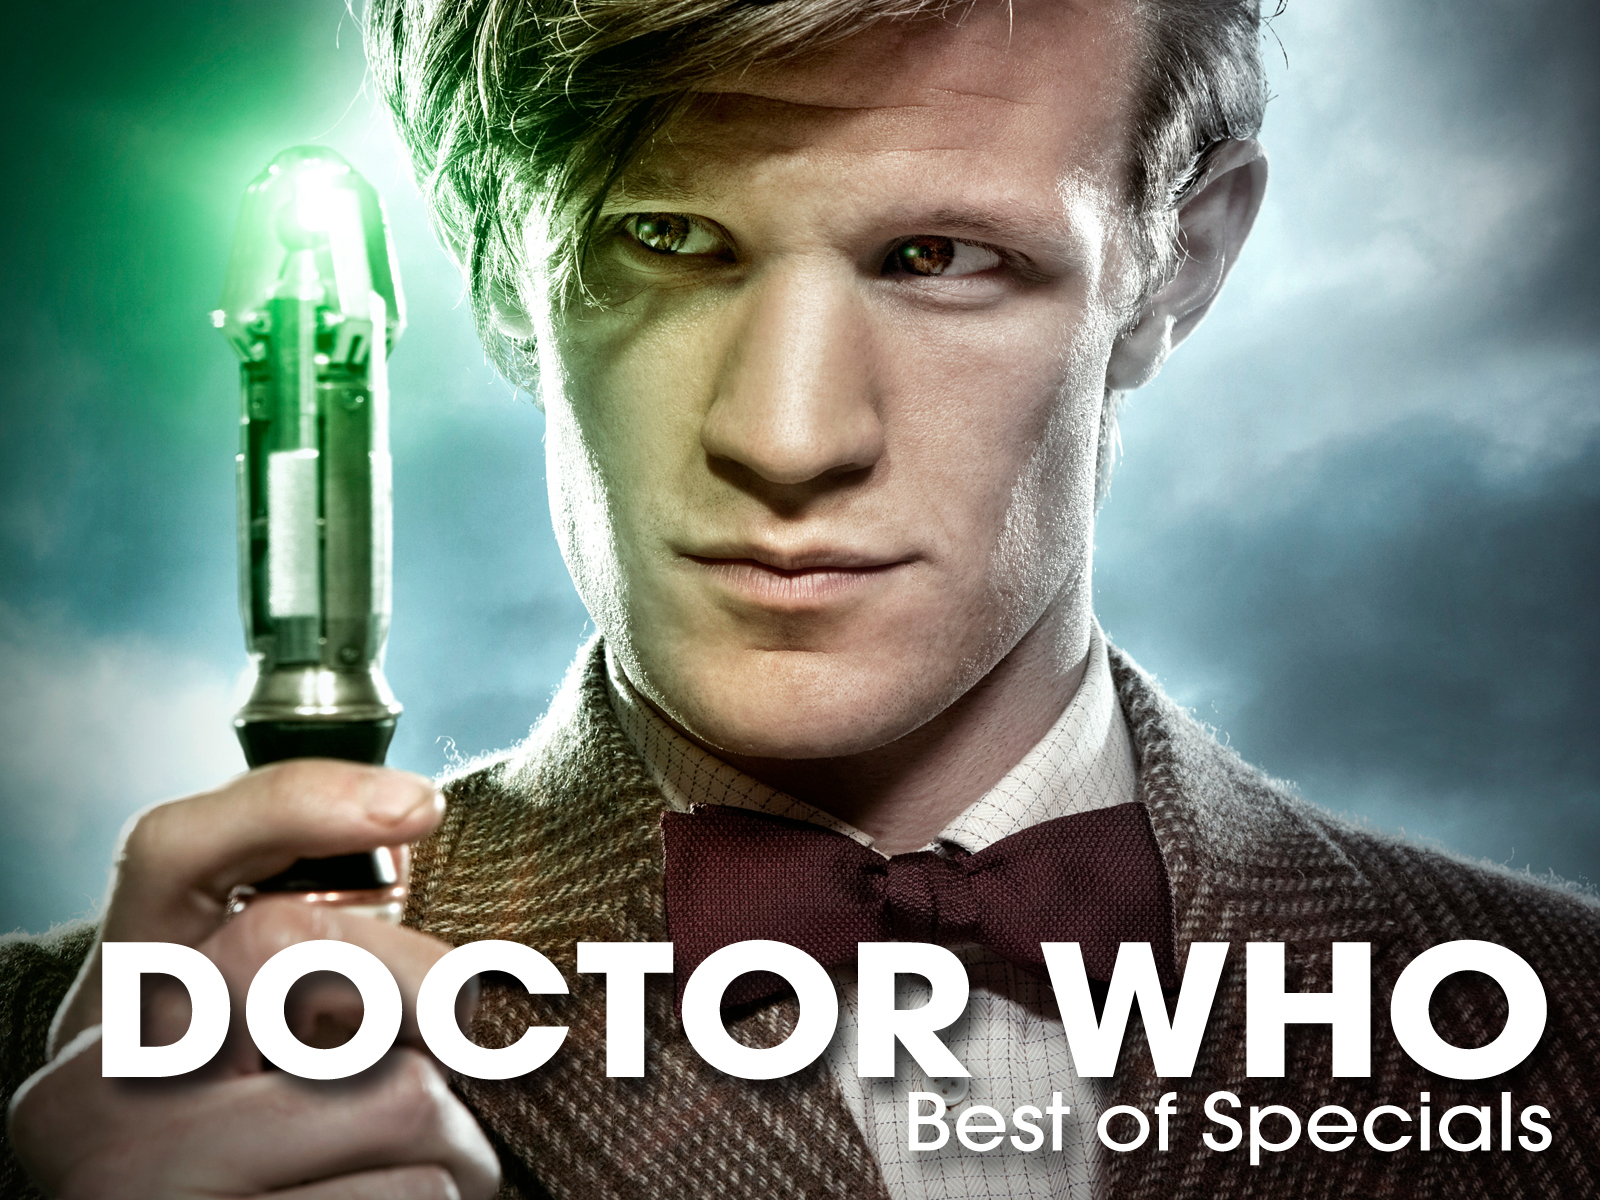 Congrats to Our Third 'Doctor Who' iTunes Giveaway Winner ...